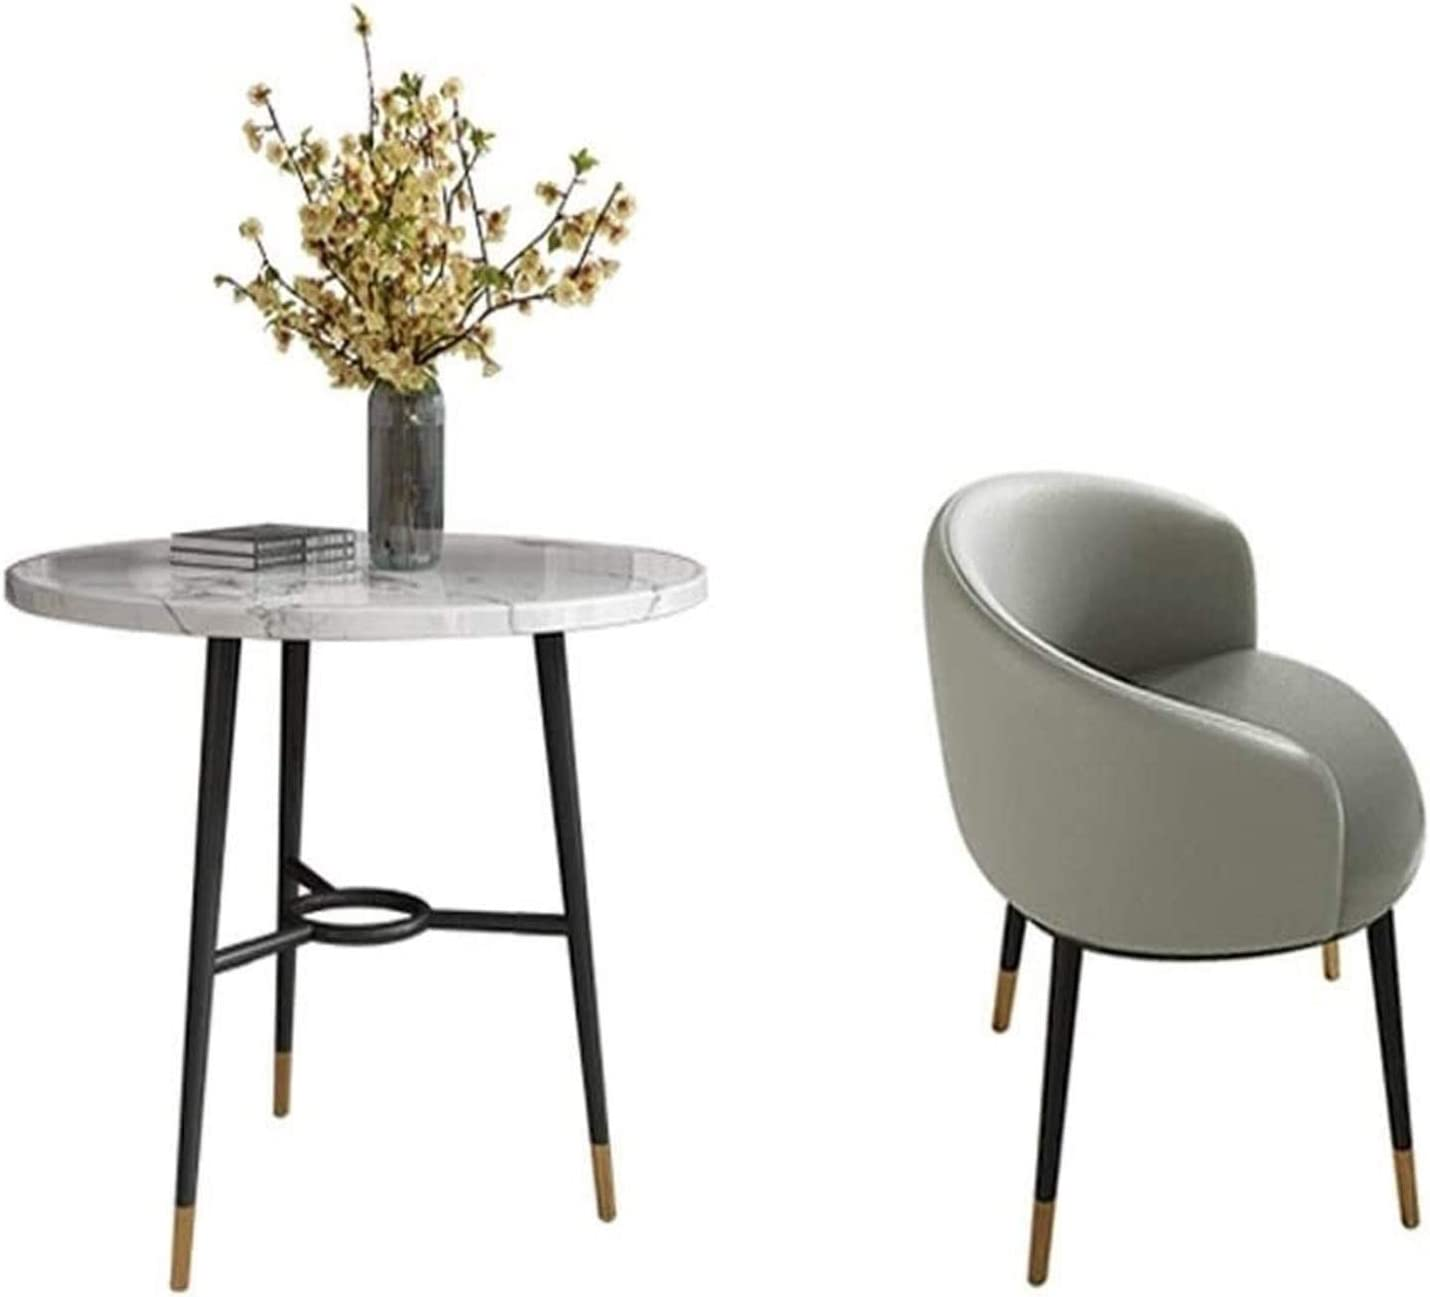 ASDDD Attention brand Office Reception Table Chair Set New product! New type and Coffee Se